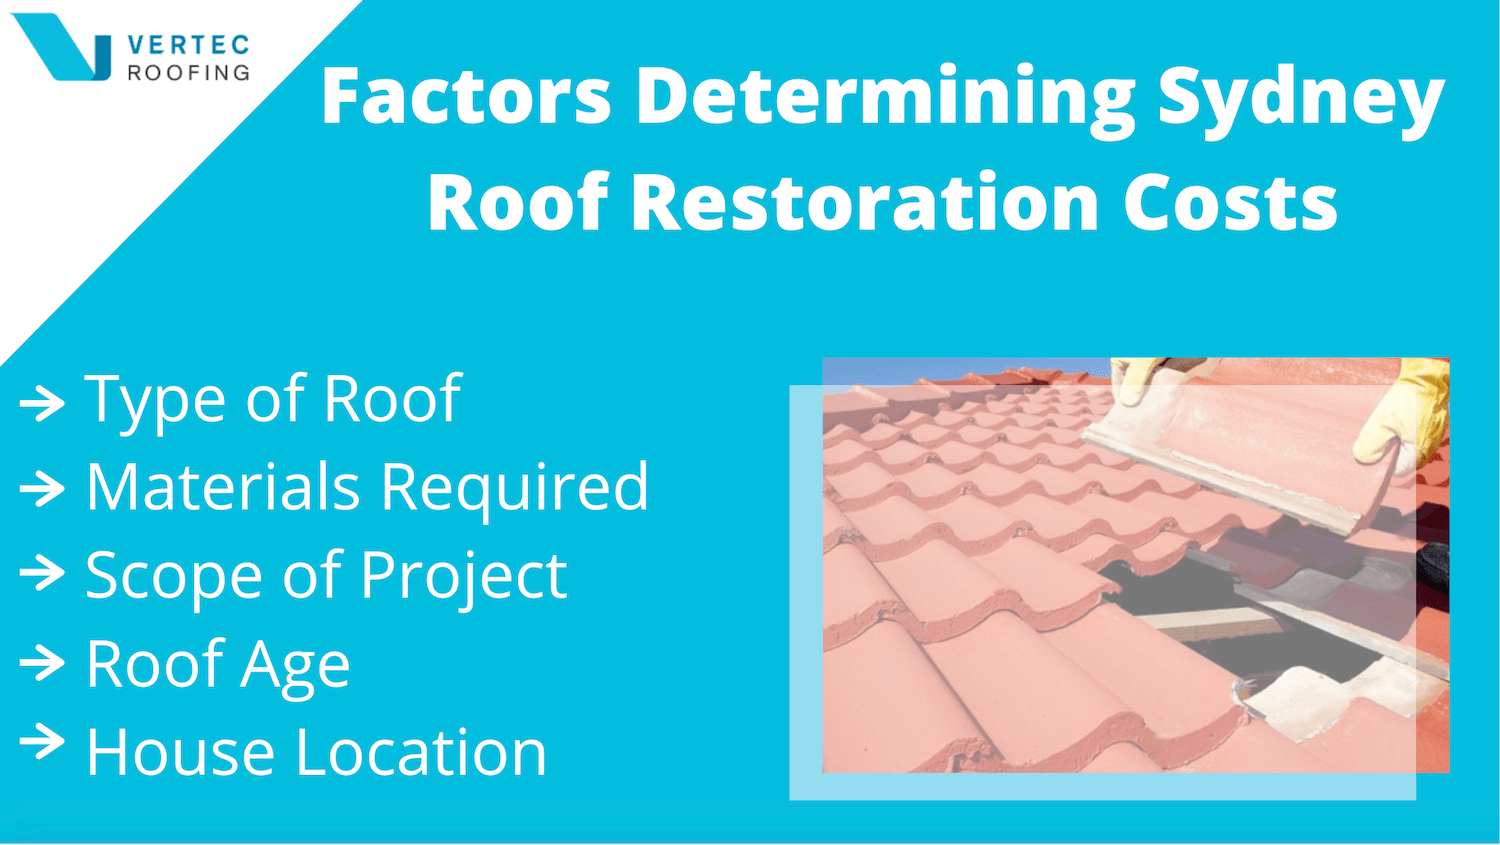 factors affecting the cost of roof restoration in sydney